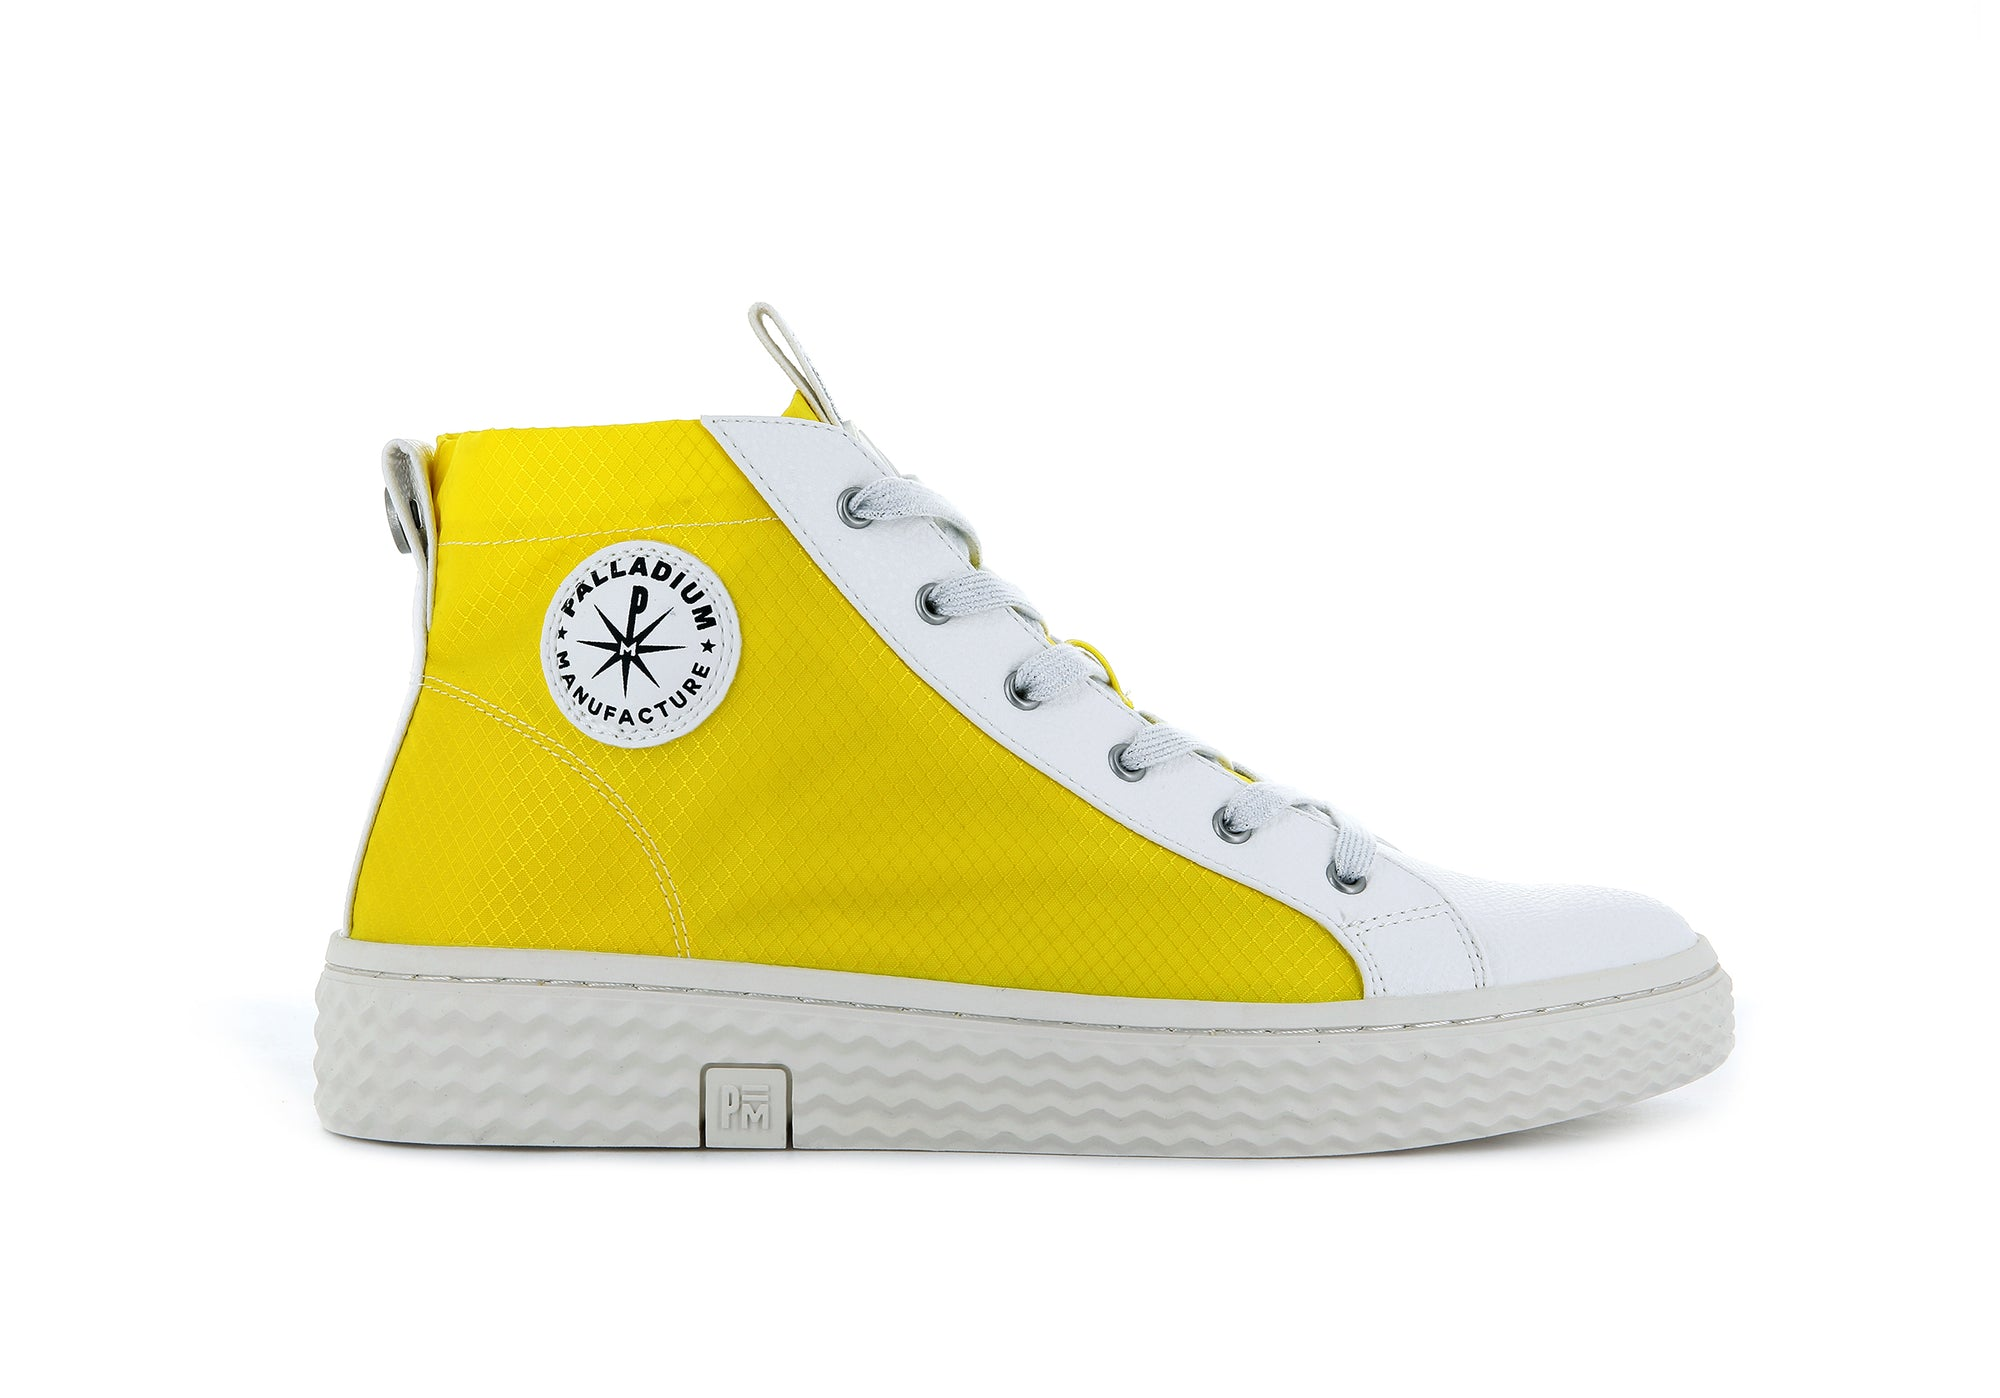 76984_559 | Baskets femme TEMPO 05 NYL | YELLOW